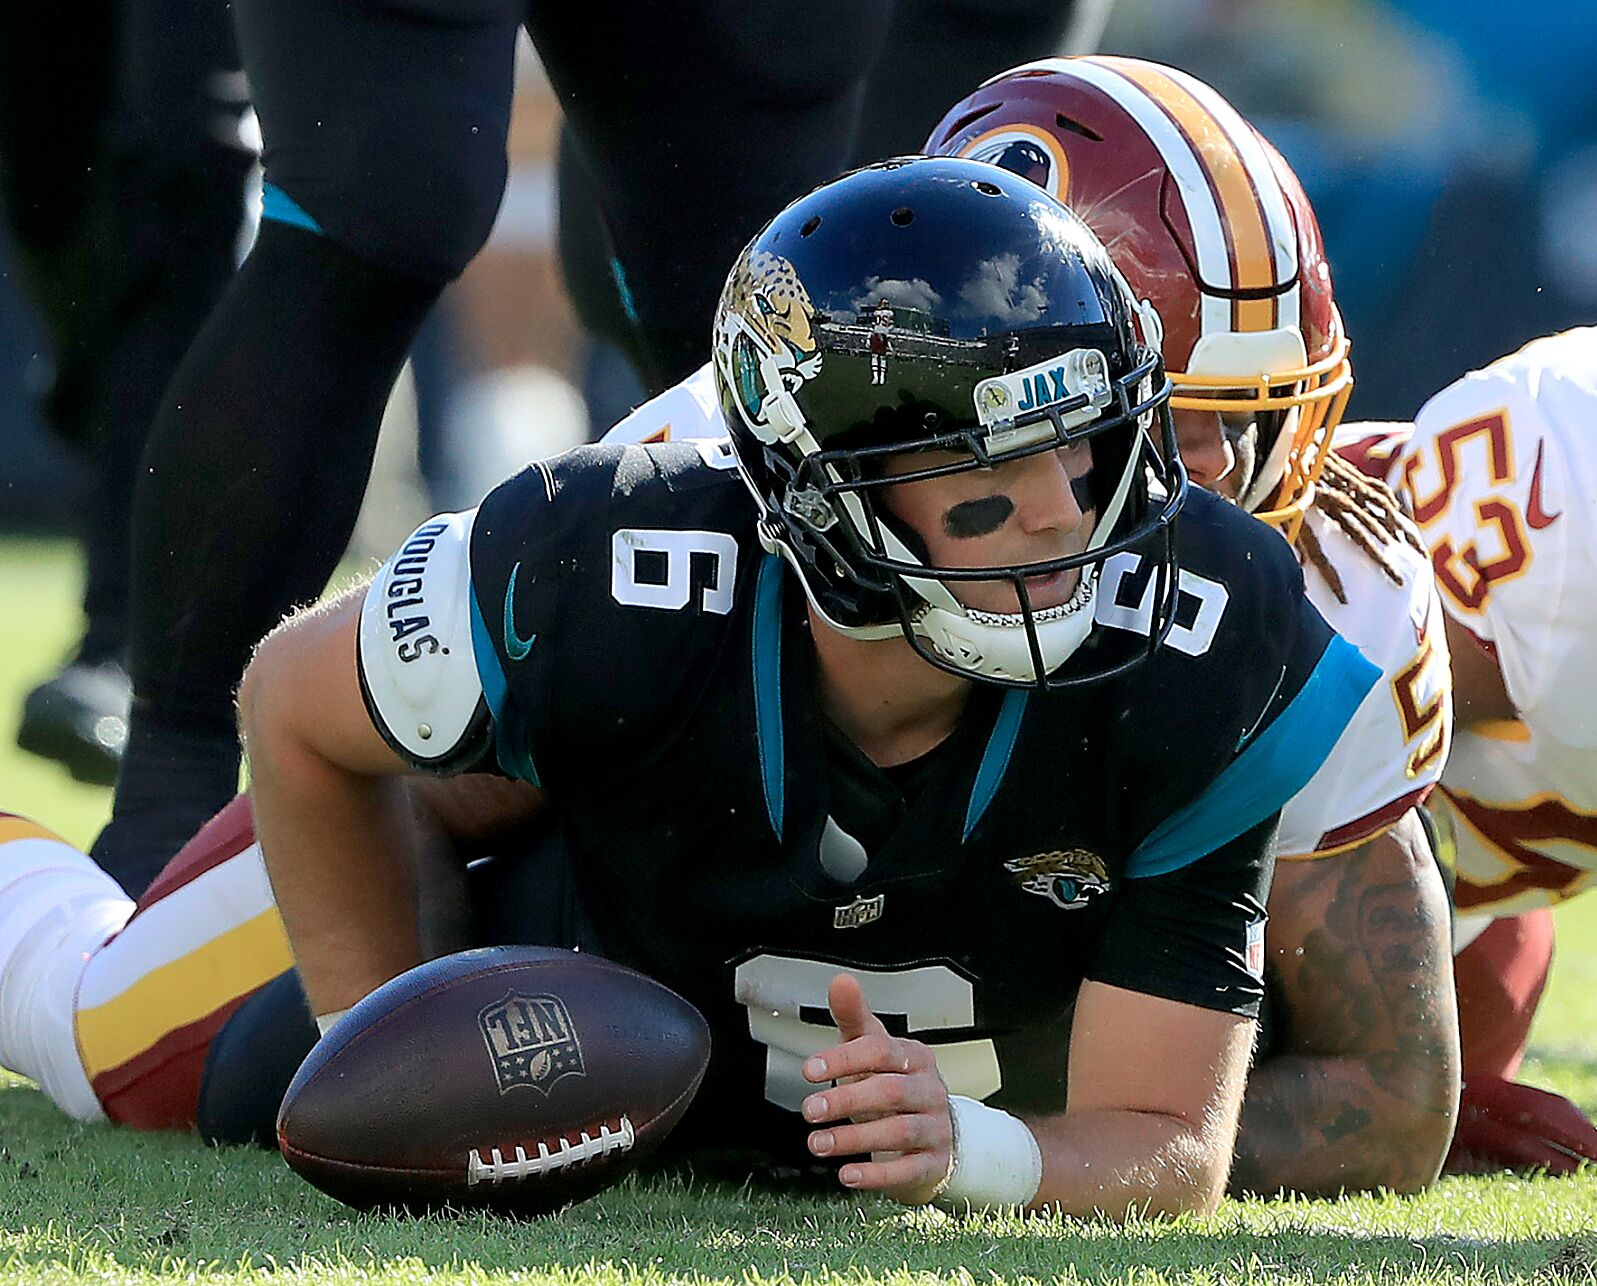 41d788fd746 JACKSONVILLE, FLORIDA – DECEMBER 16: Cody Kessler #6 of the Jacksonville  Jaguars is sacked by Jonathan Allen #93 of the Washington Redskins during  the game ...